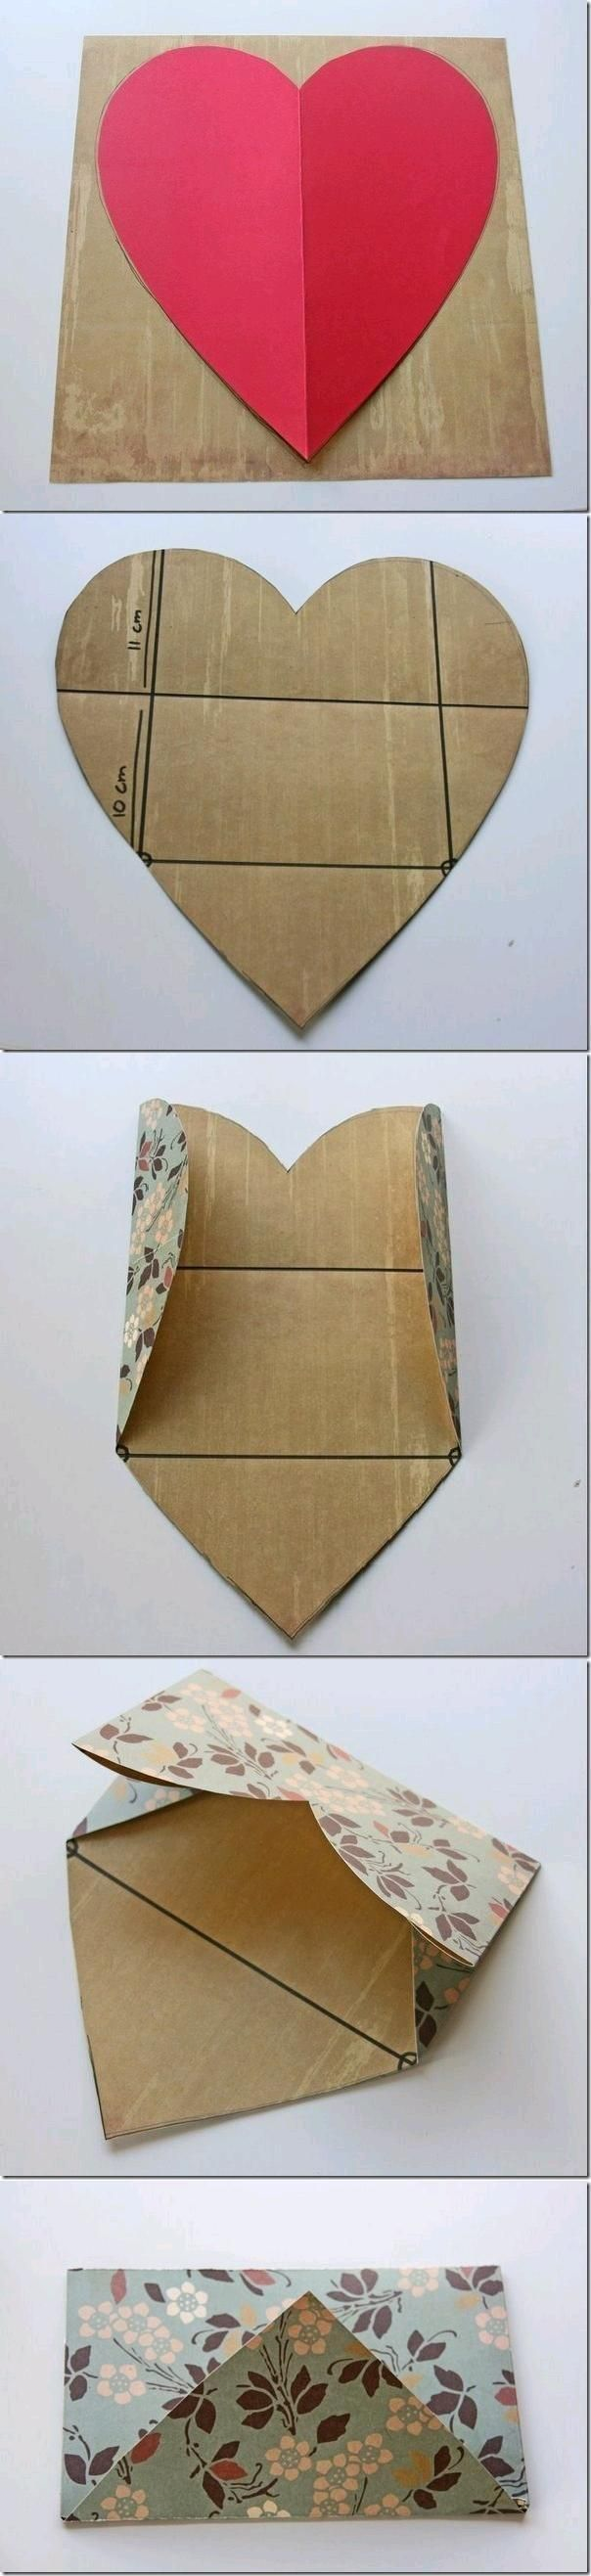 fold a heart envelope. Might be nice with a gift.